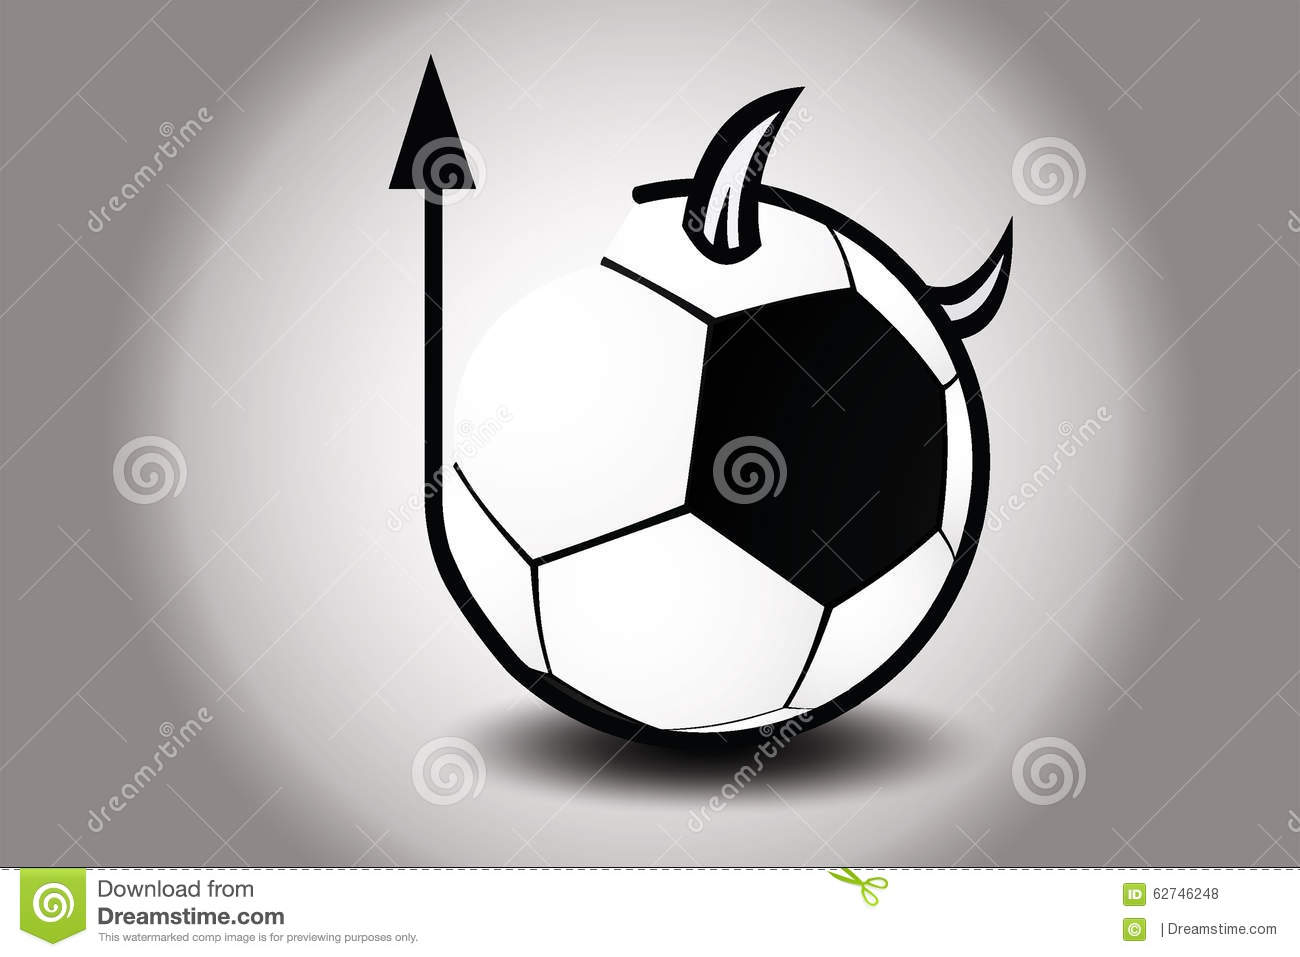 Soccer Ball With Devils Horn And Tail. Vector Illustration Stock.